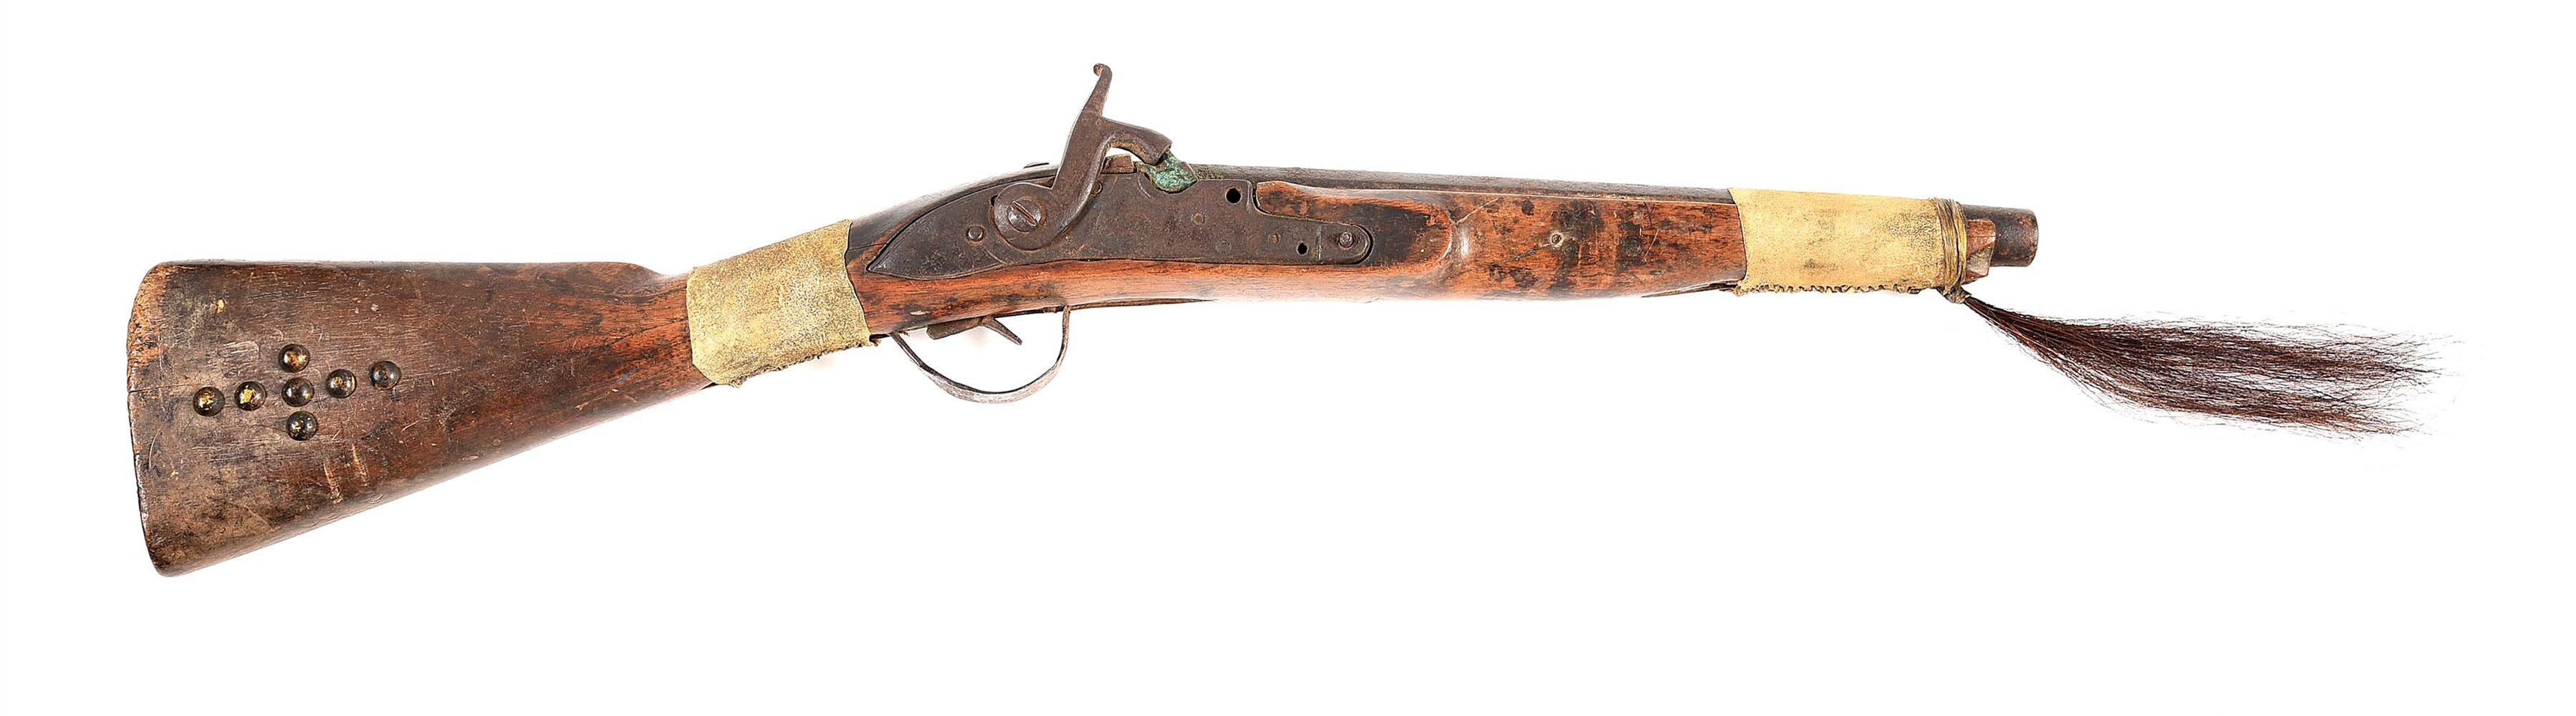 (A) UNTOUCHED AMERICAN PLAINS INDIAN TRADE TYPE BLANKET GUN.